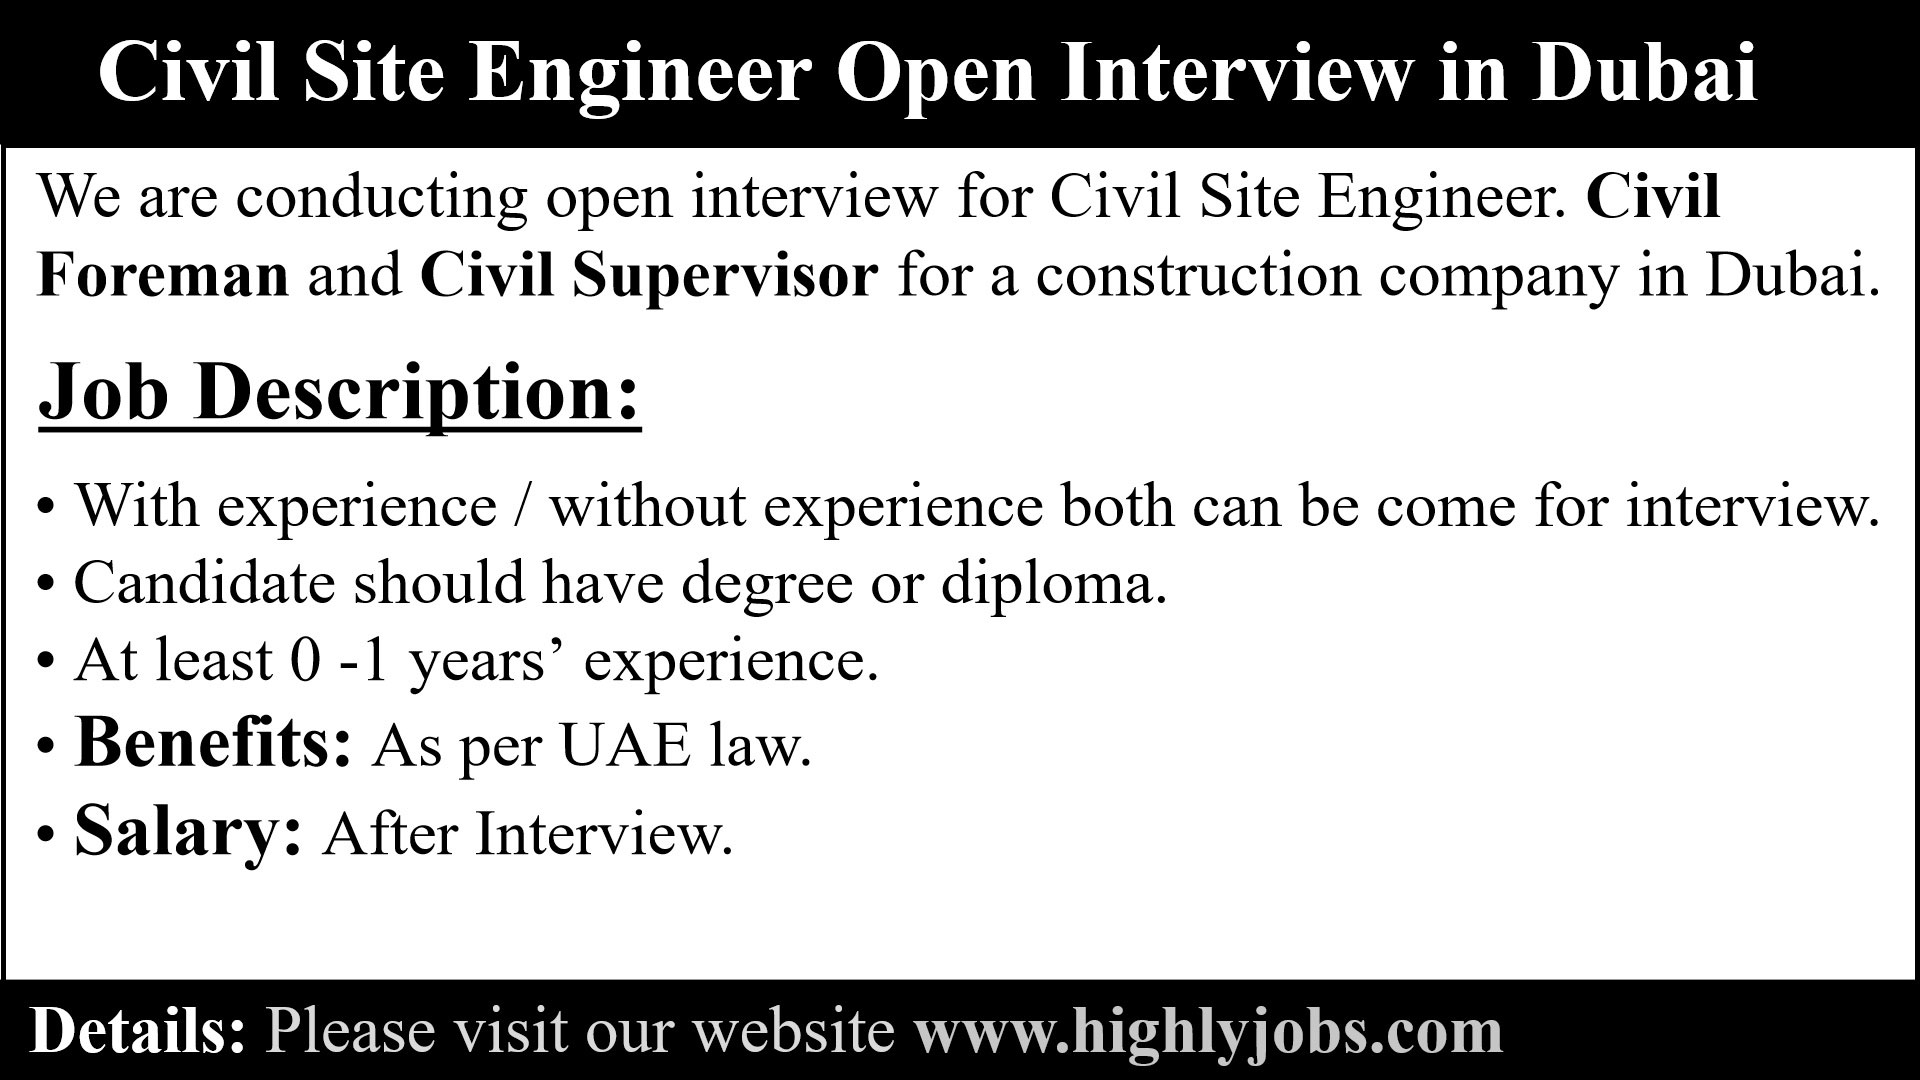 Civil Site Engineer Open Interview in Dubai | Highlyjobs